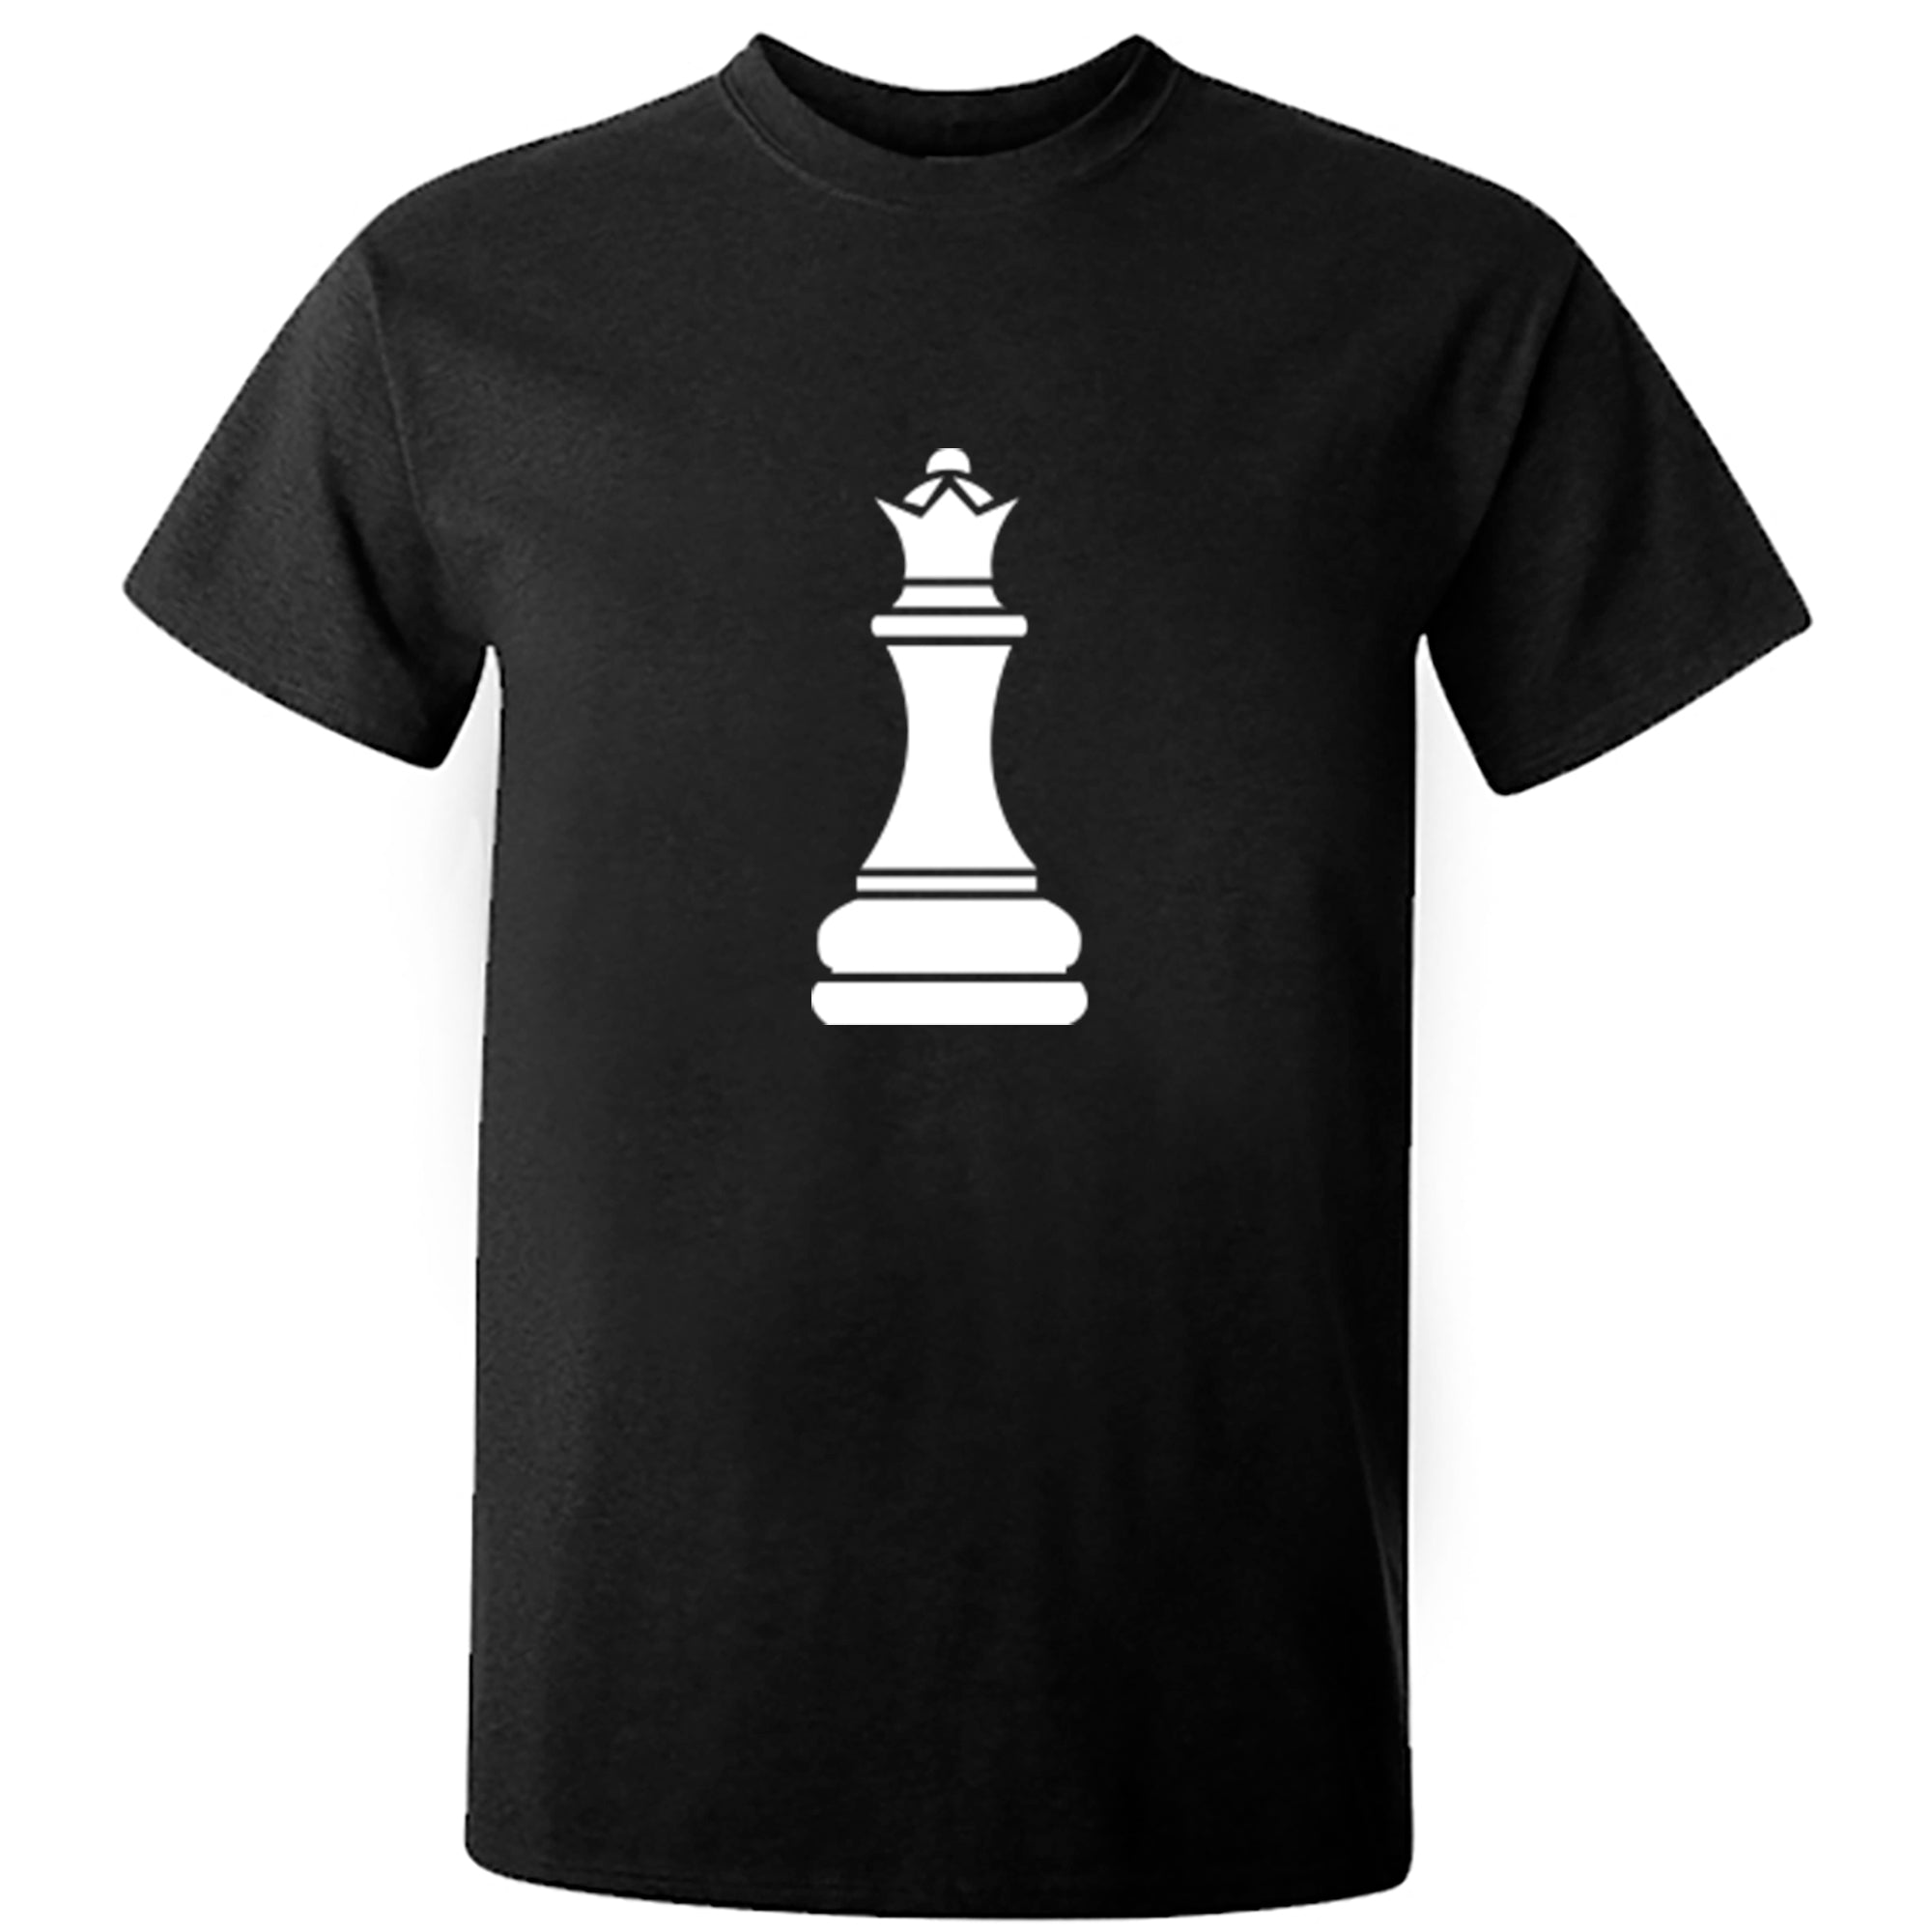 Queen Chess Piece Unisex Fit T-Shirt S0343 - Illustrated Identity Ltd.